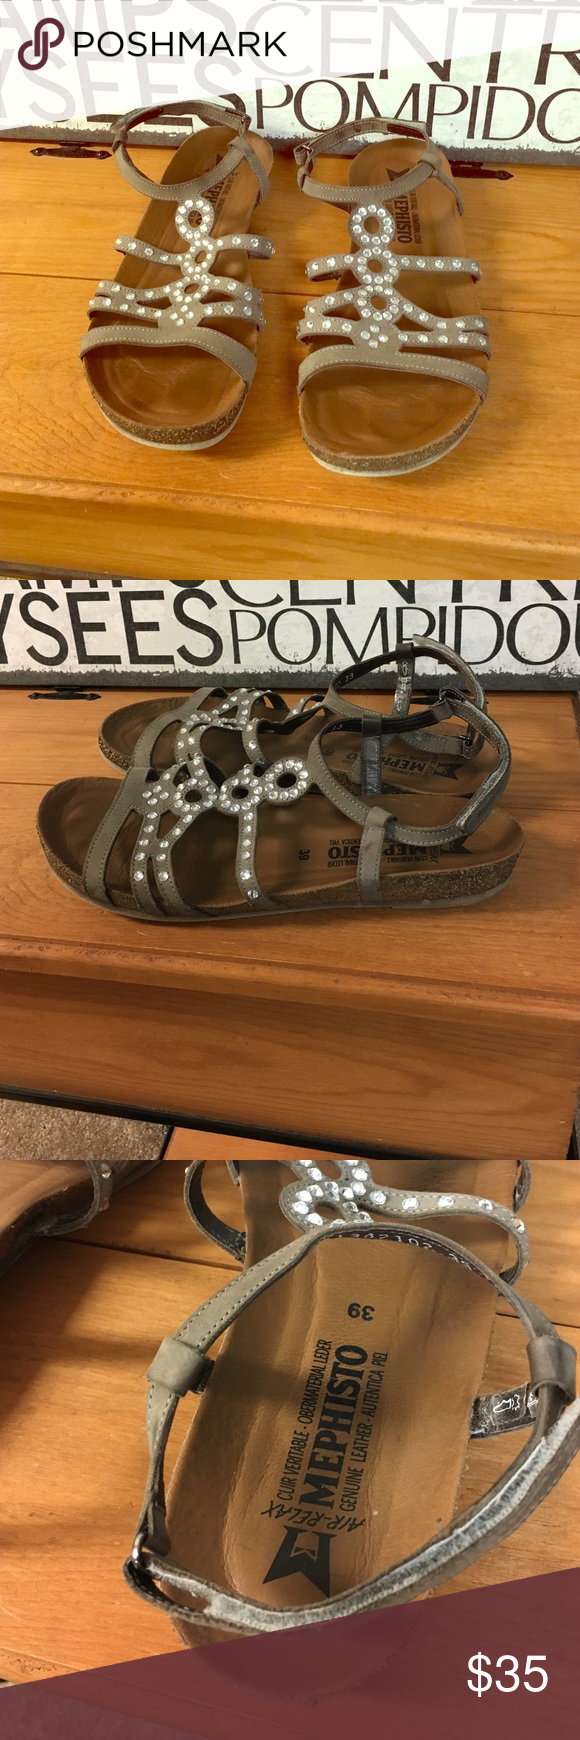 Mephisto Strappy sandals with embellishments Classy looking sandals with sparkle.  Genuine leather. Ankle straps have Velcro closures. Cushioned inner soles. Fits 8-8.5. Mephisto Shoes Sandals